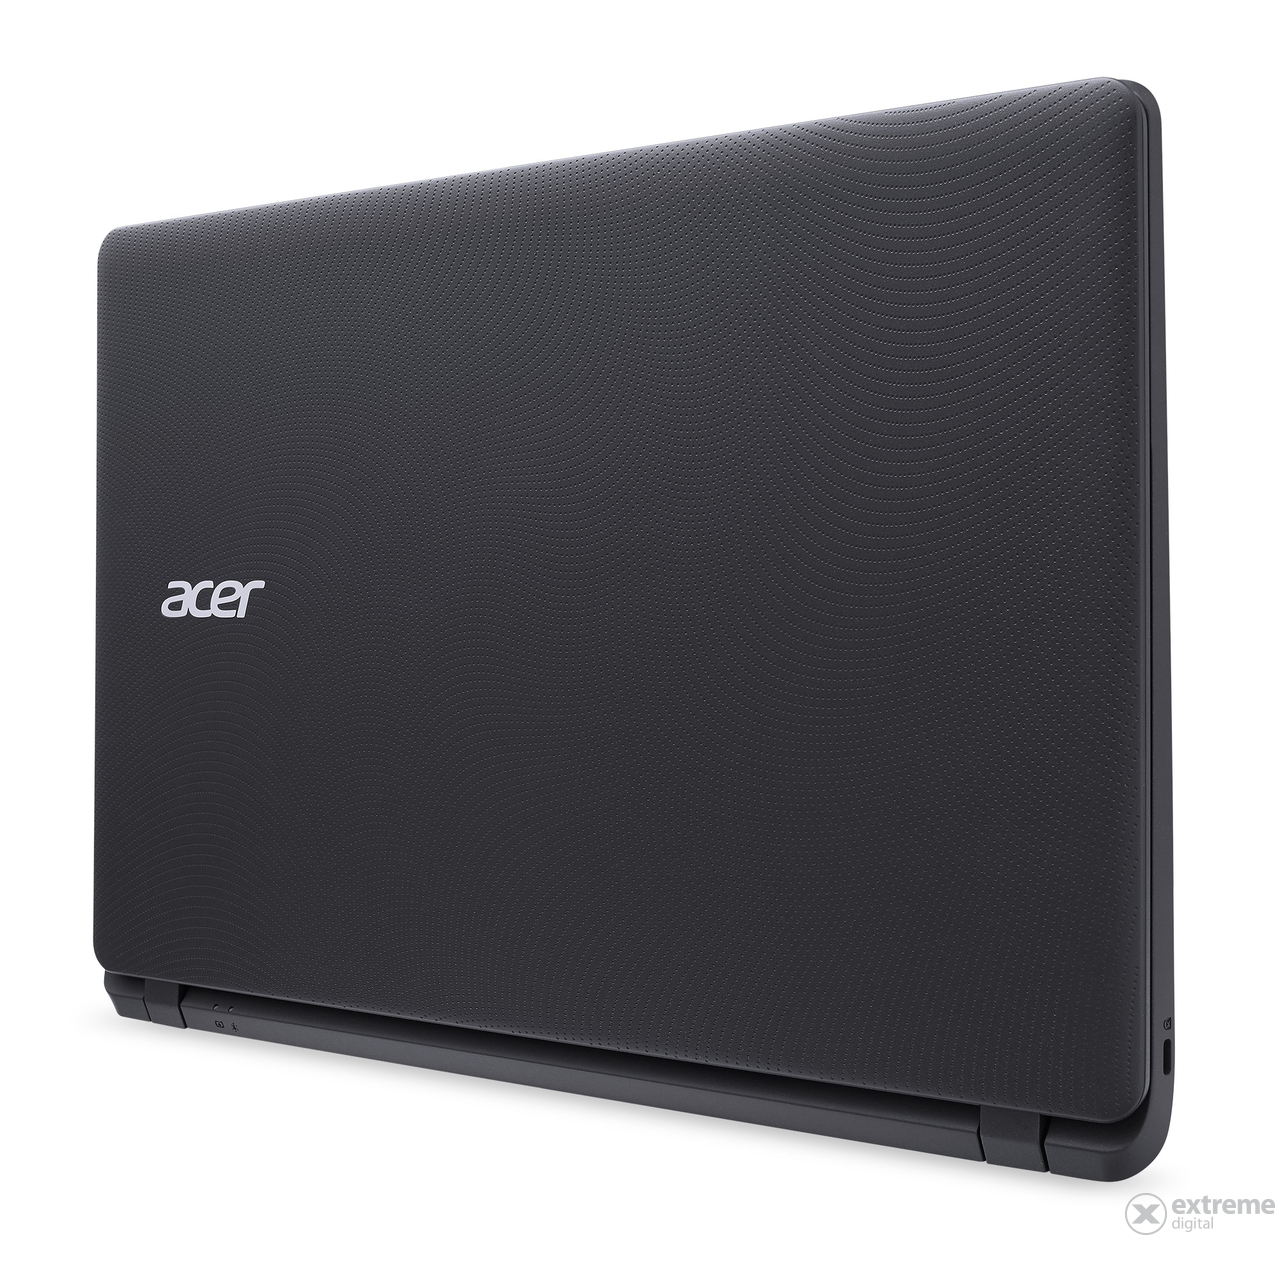 acer-aspire-es1-311-p0jt-nx-mrteu-010-13-3-notebook-windows-8-1-fekete_32d9e57a.jpg